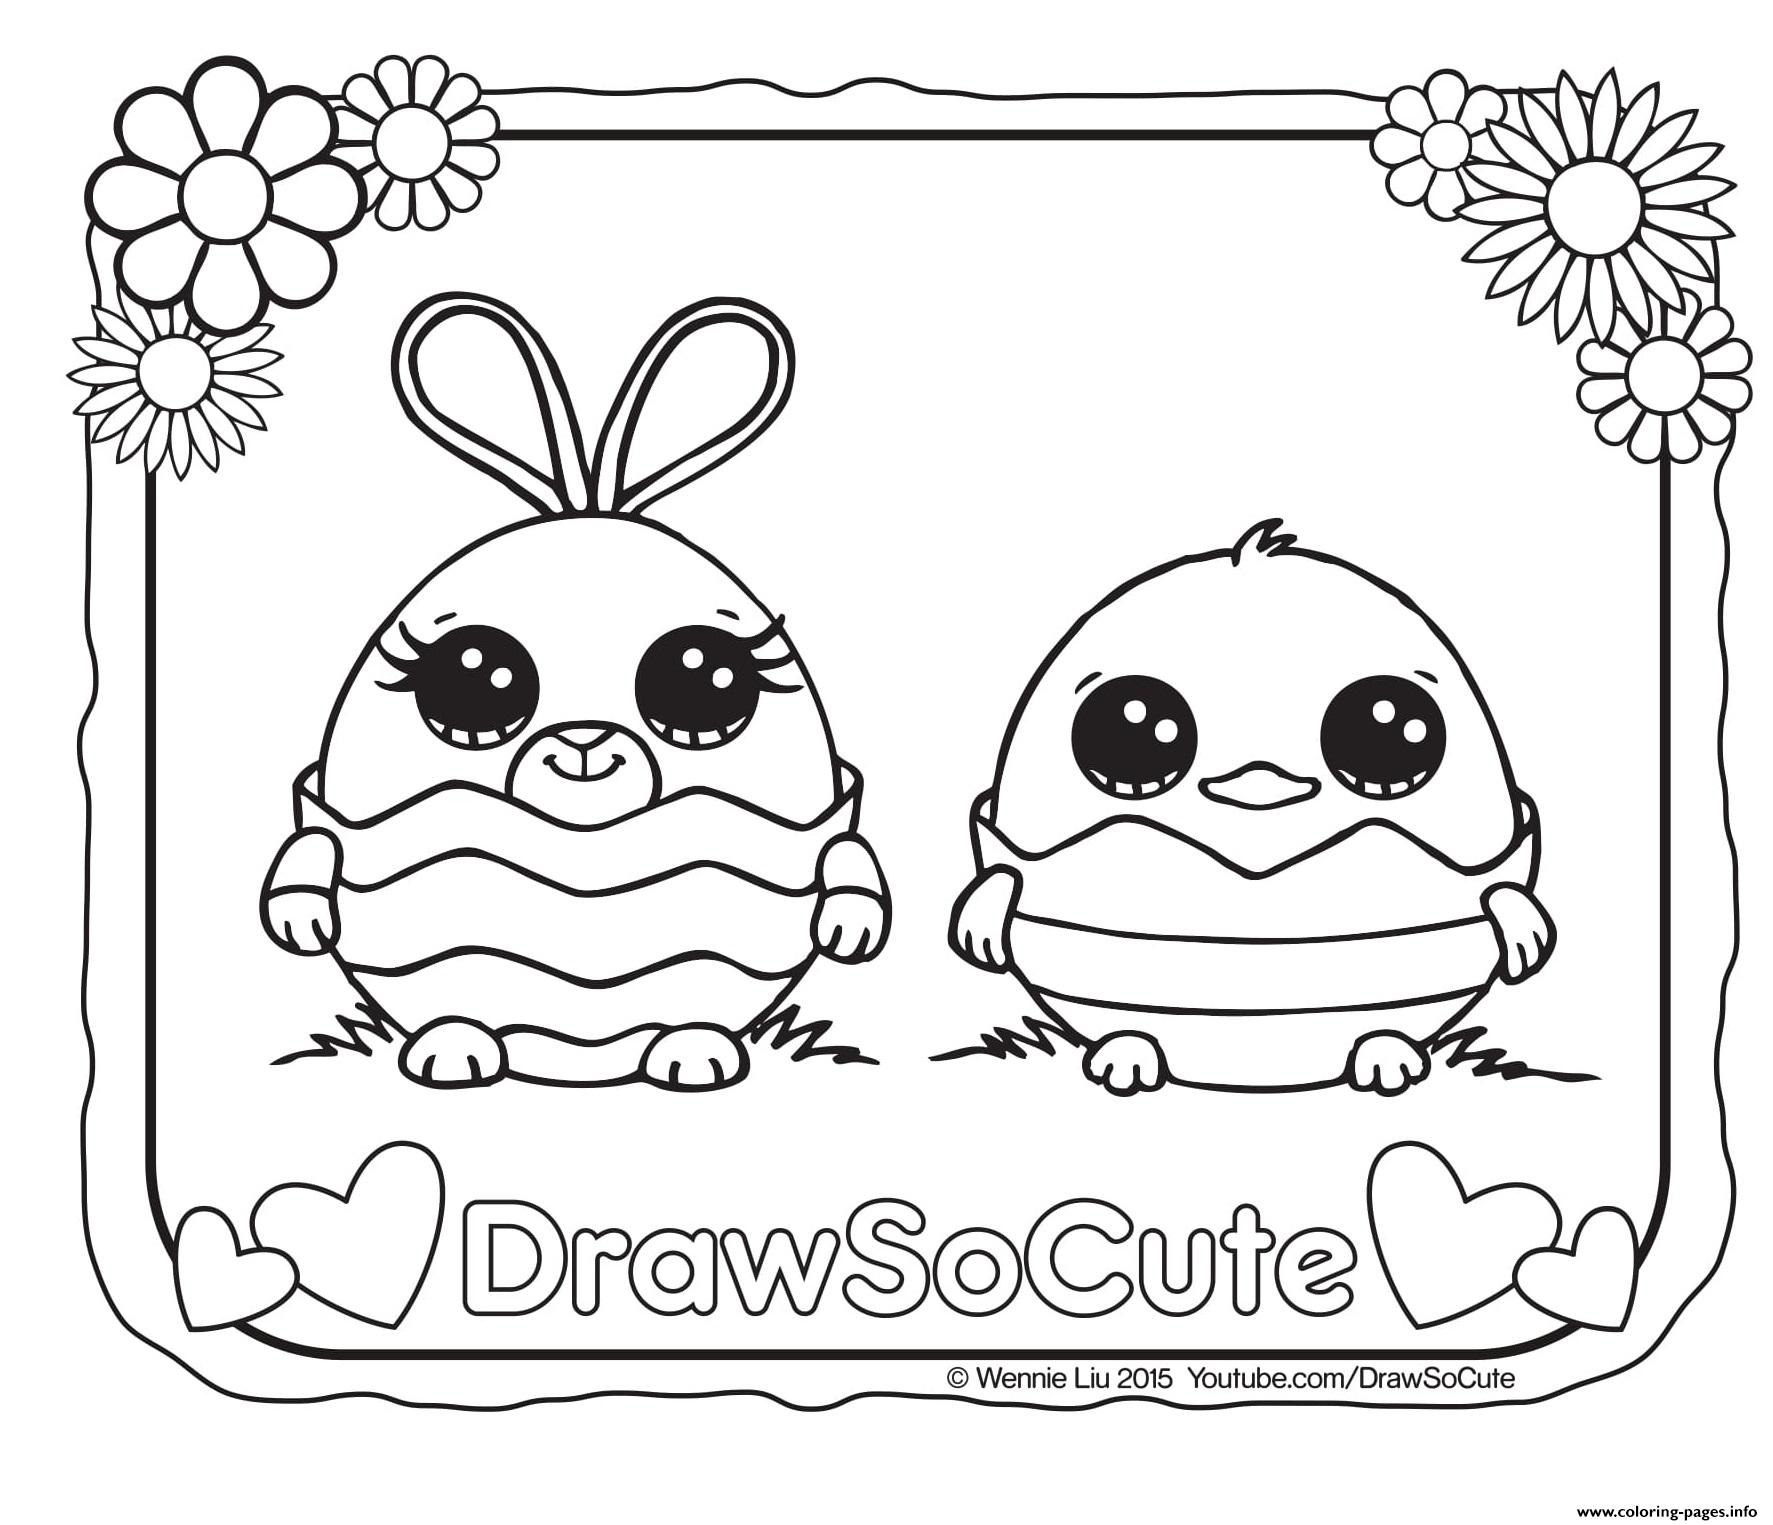 1497976454Easter-draw-so-cute